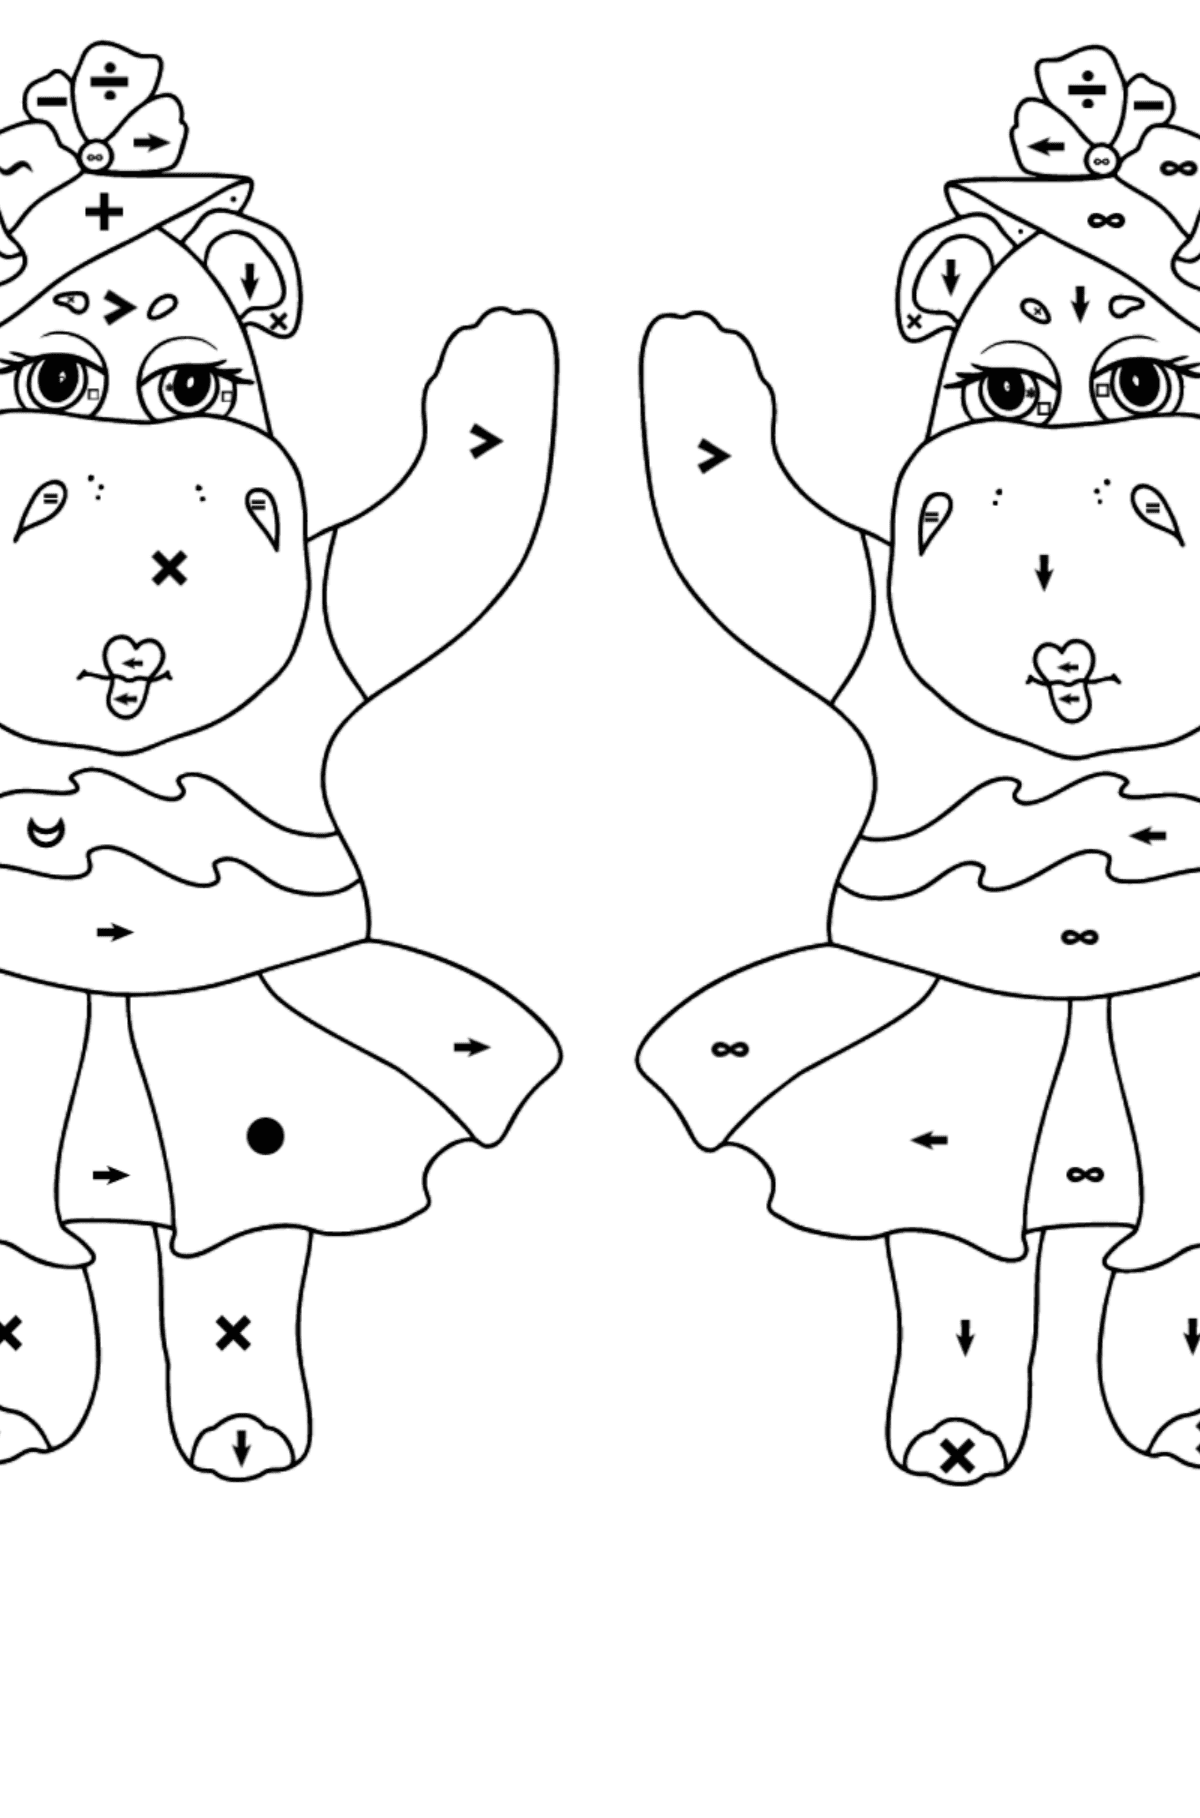 Coloring Page - Hippos are Harvesting the Crops - Coloring by Symbols for Kids